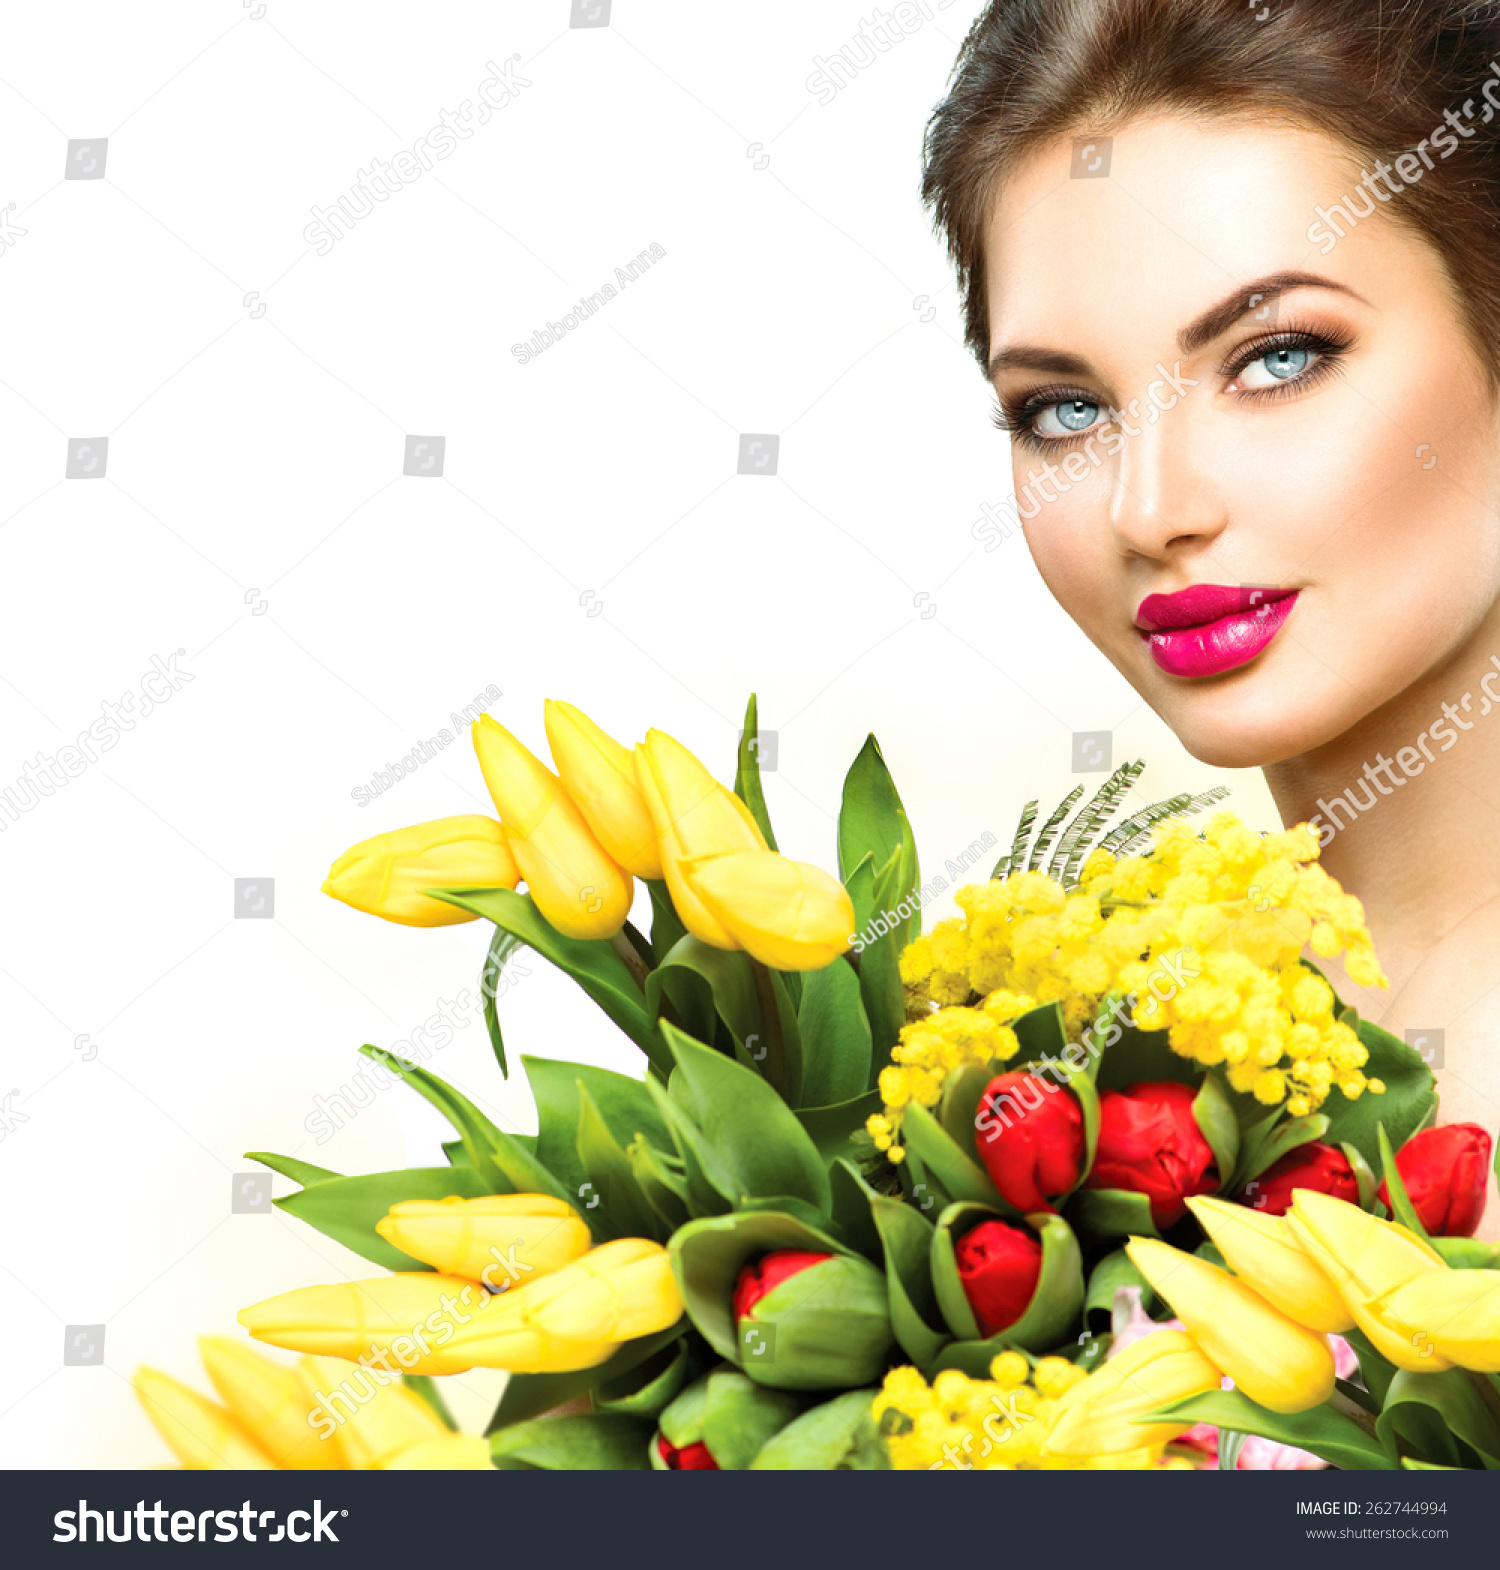 Tulip Girl Name Stock Photo Beauty Model Woman With Spring Flower